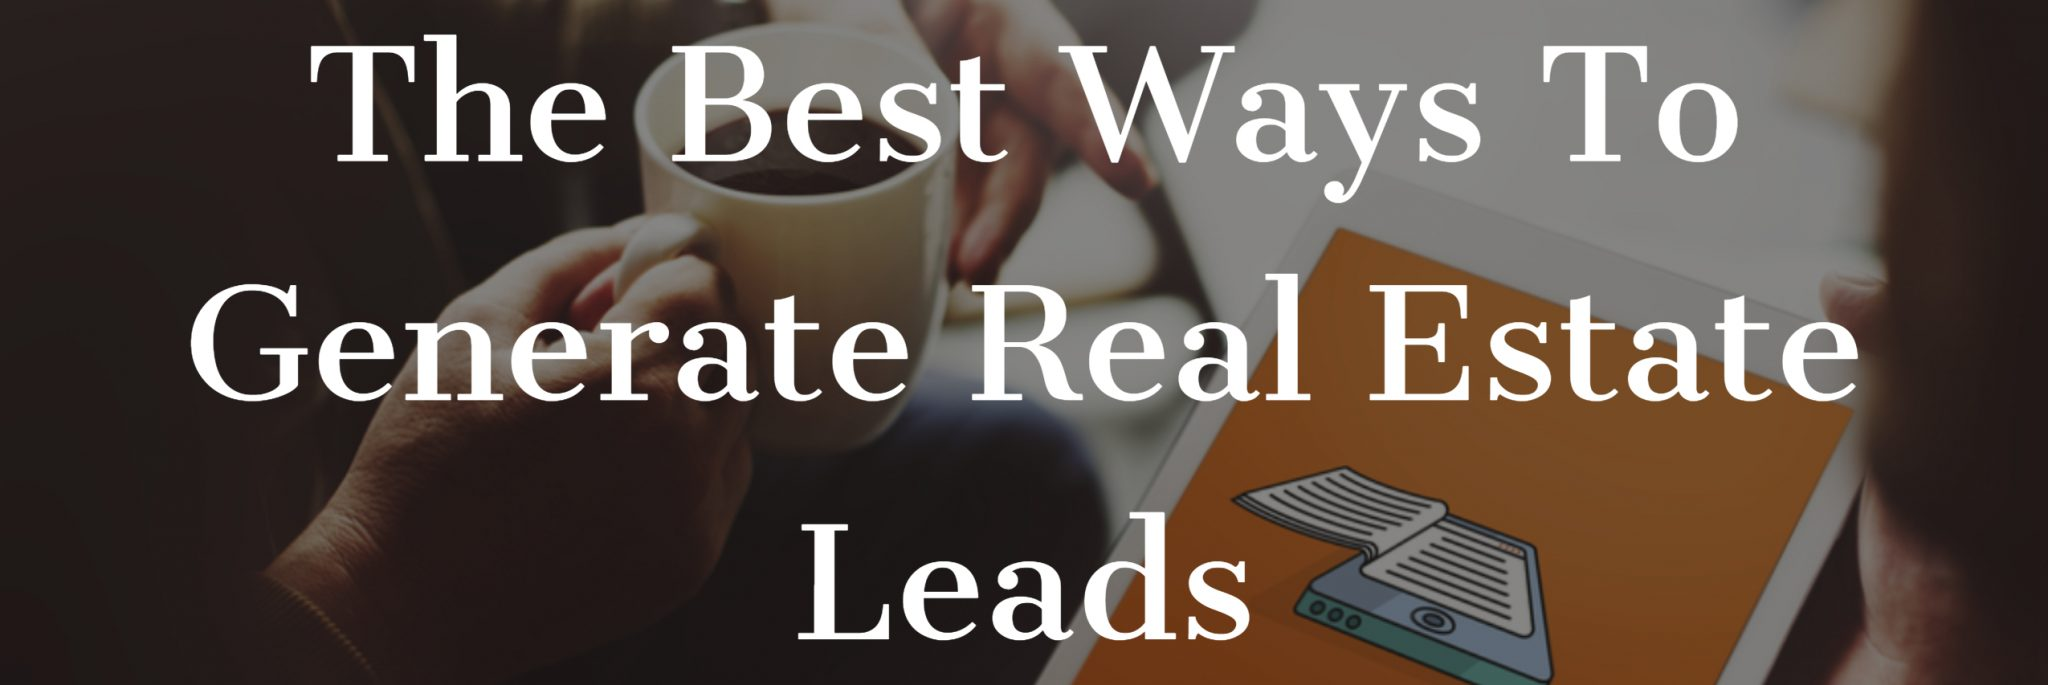 Best real estate company to work for best training for new real estate agents real estate agent coaching real estate agent training best real estate company in Los Angeles (18)